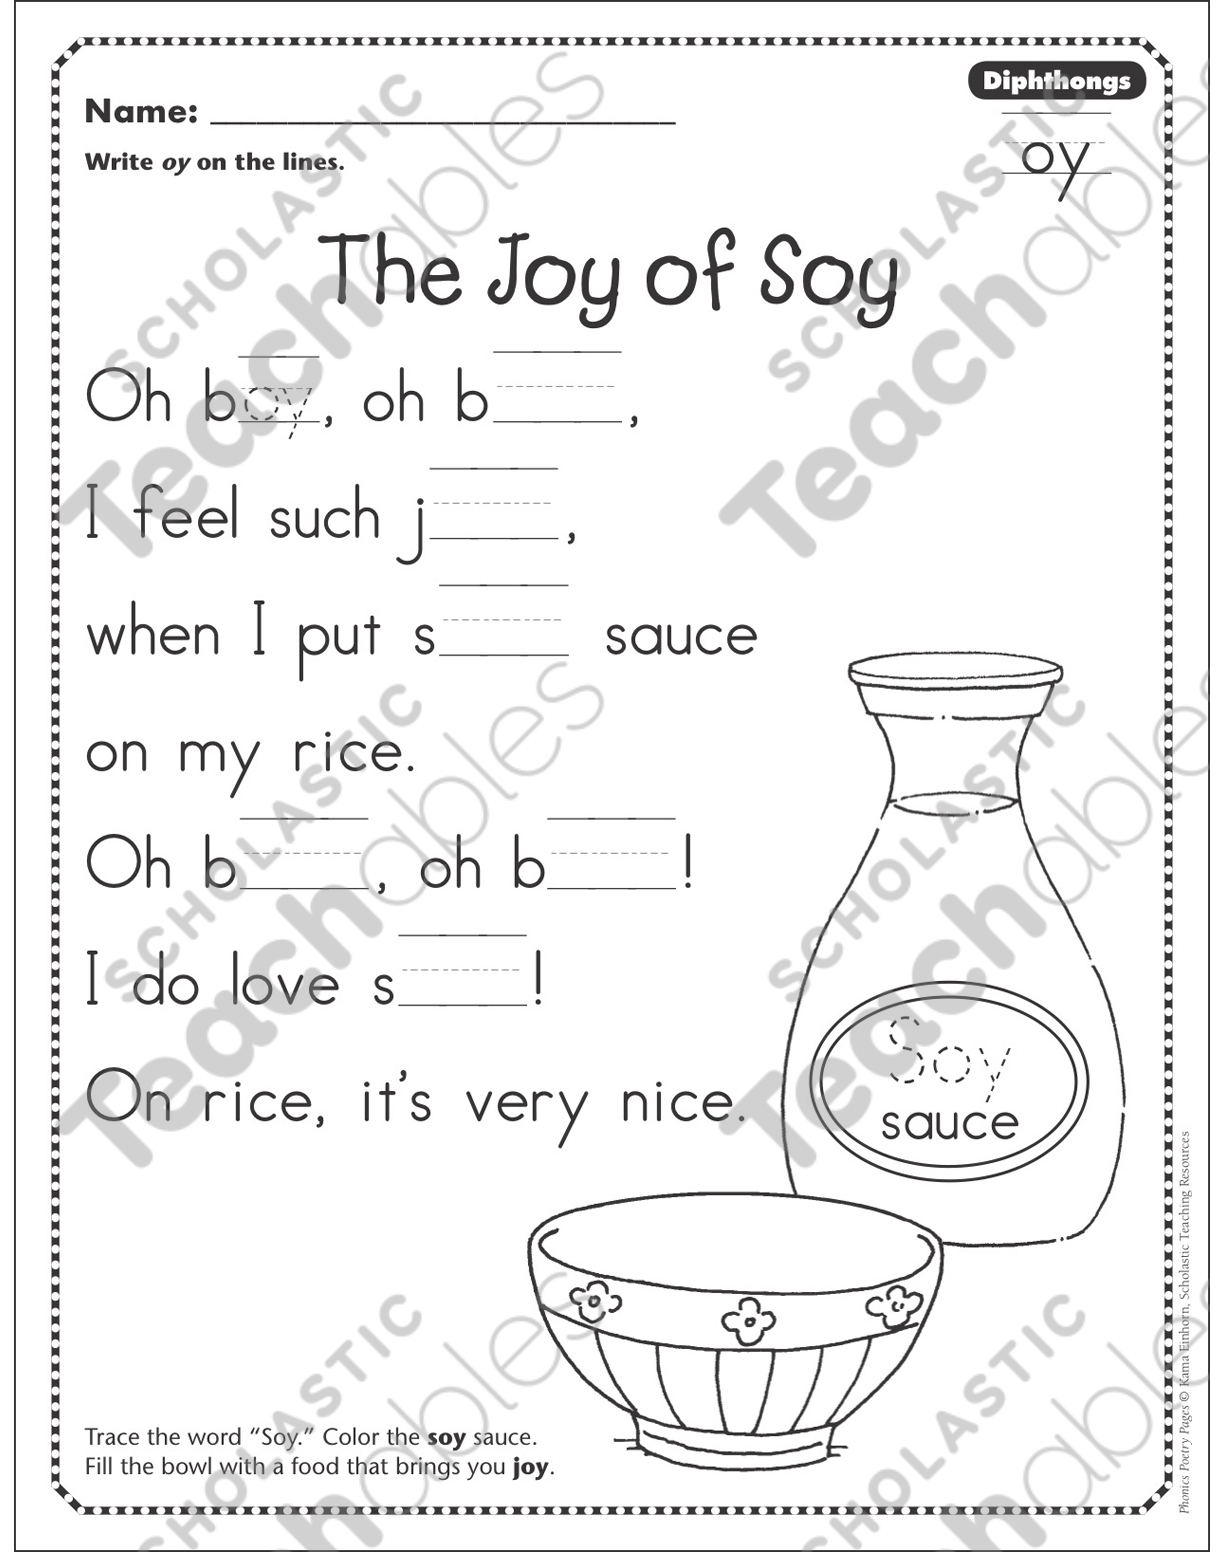 hight resolution of The Joy of Soy (Dipthongs - oy): Phonics Poetry Page   Printable Skills  Sheets